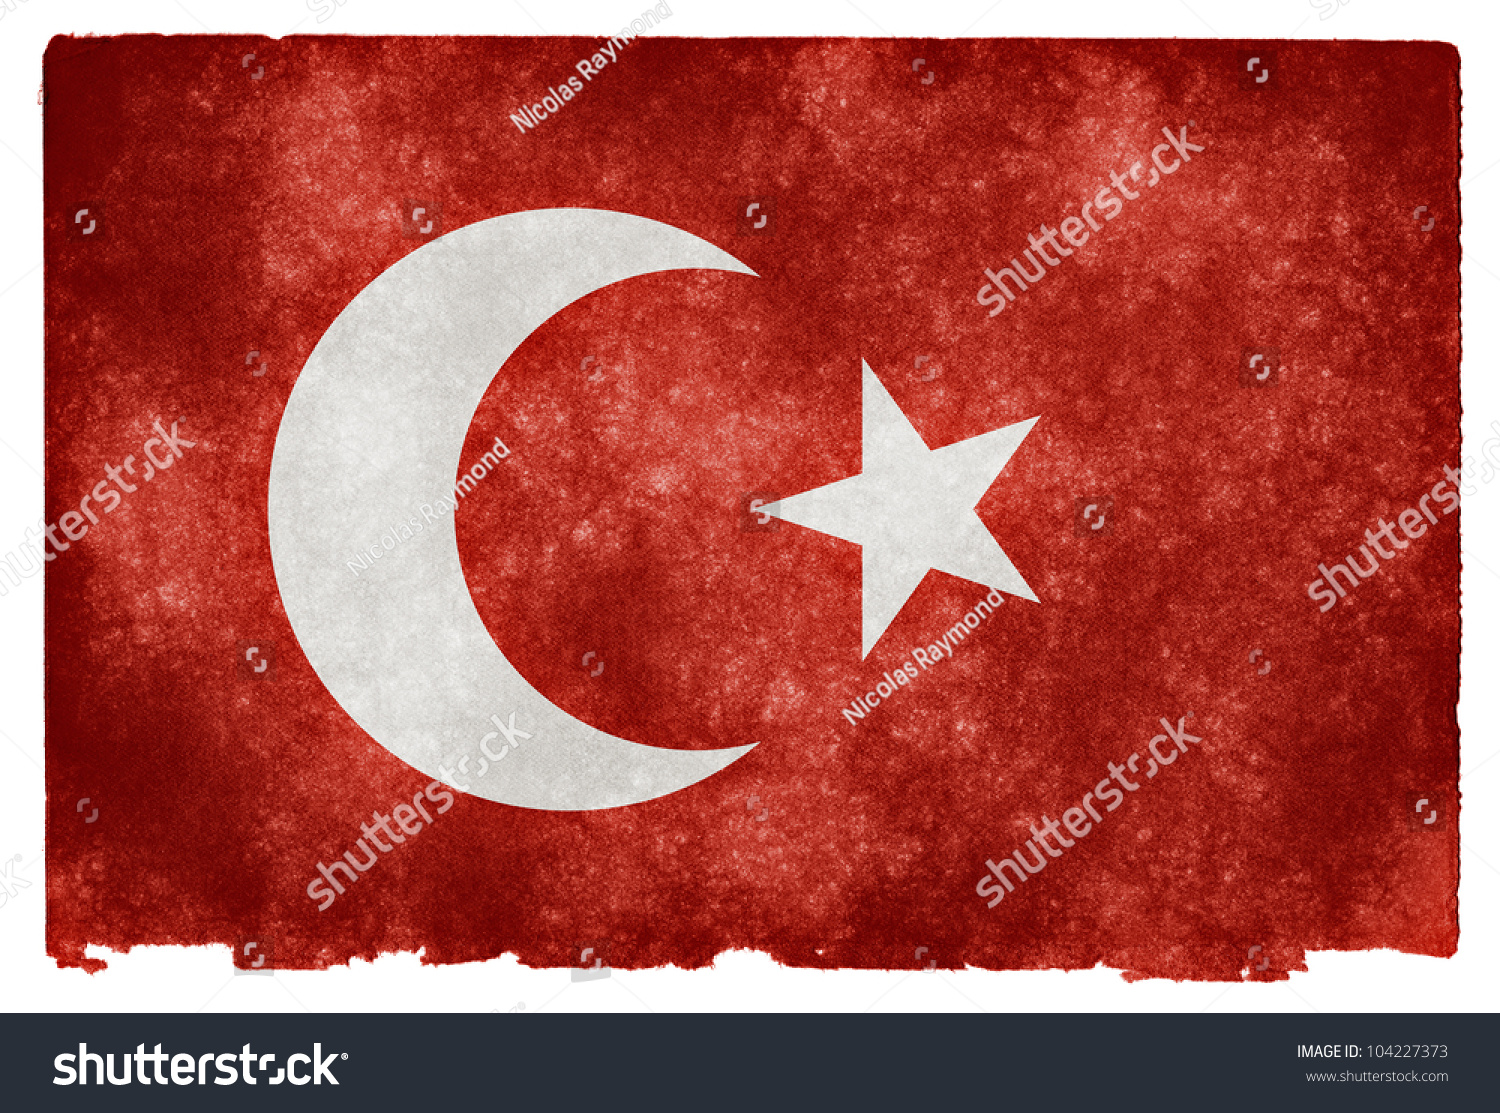 ottoman empire paper Strengths of the ottoman empire discuss why the ottoman empire was famous - history term paper.